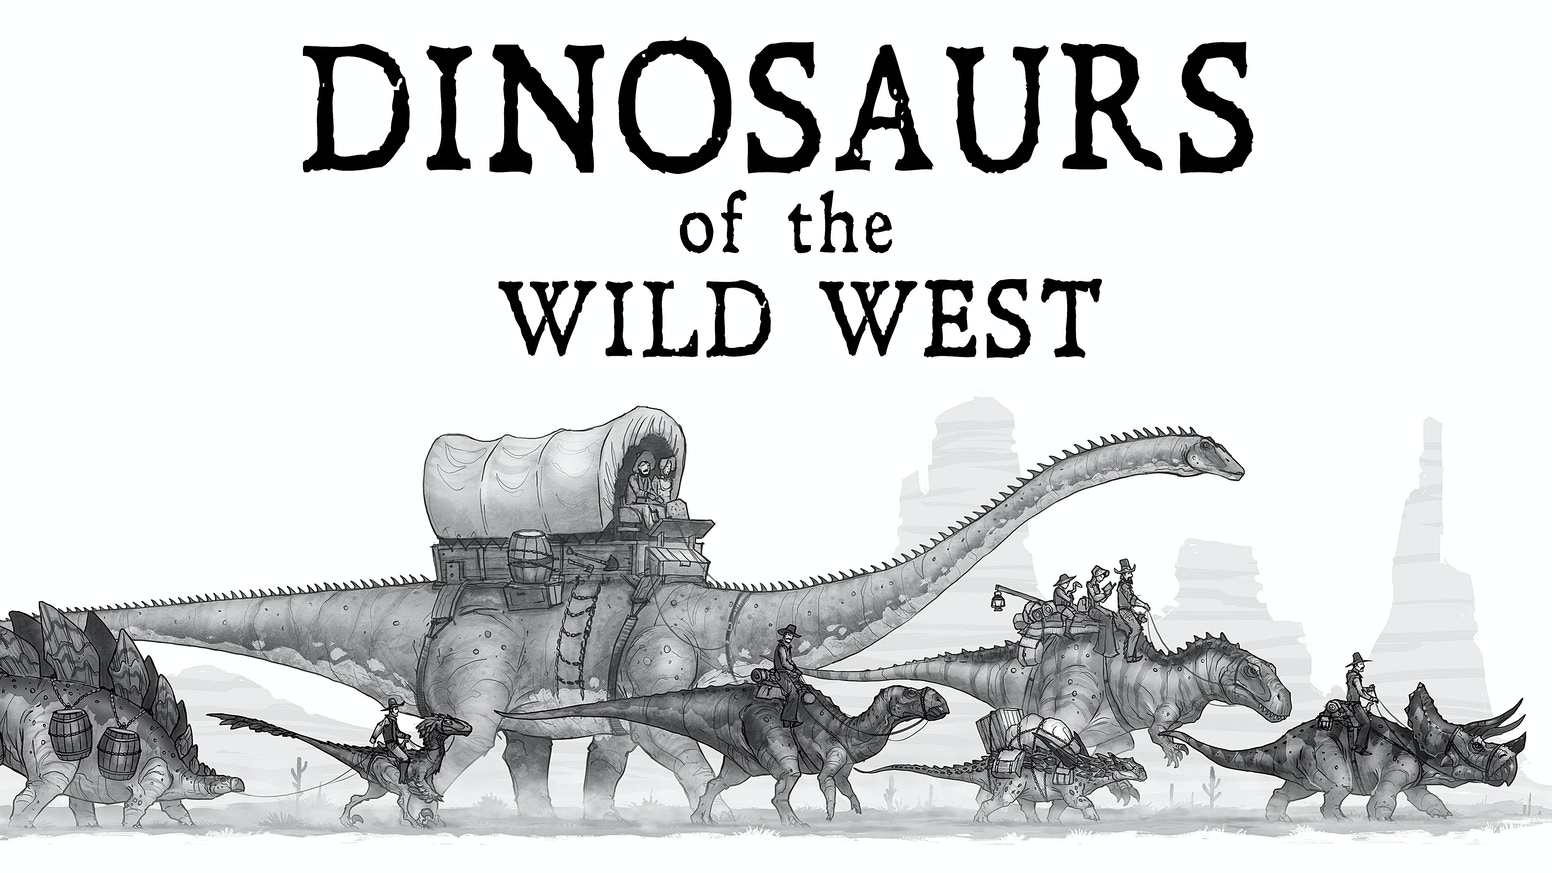 A collection of illustrations depicting the everyday lives of dinosaurs and people living together in the old west.